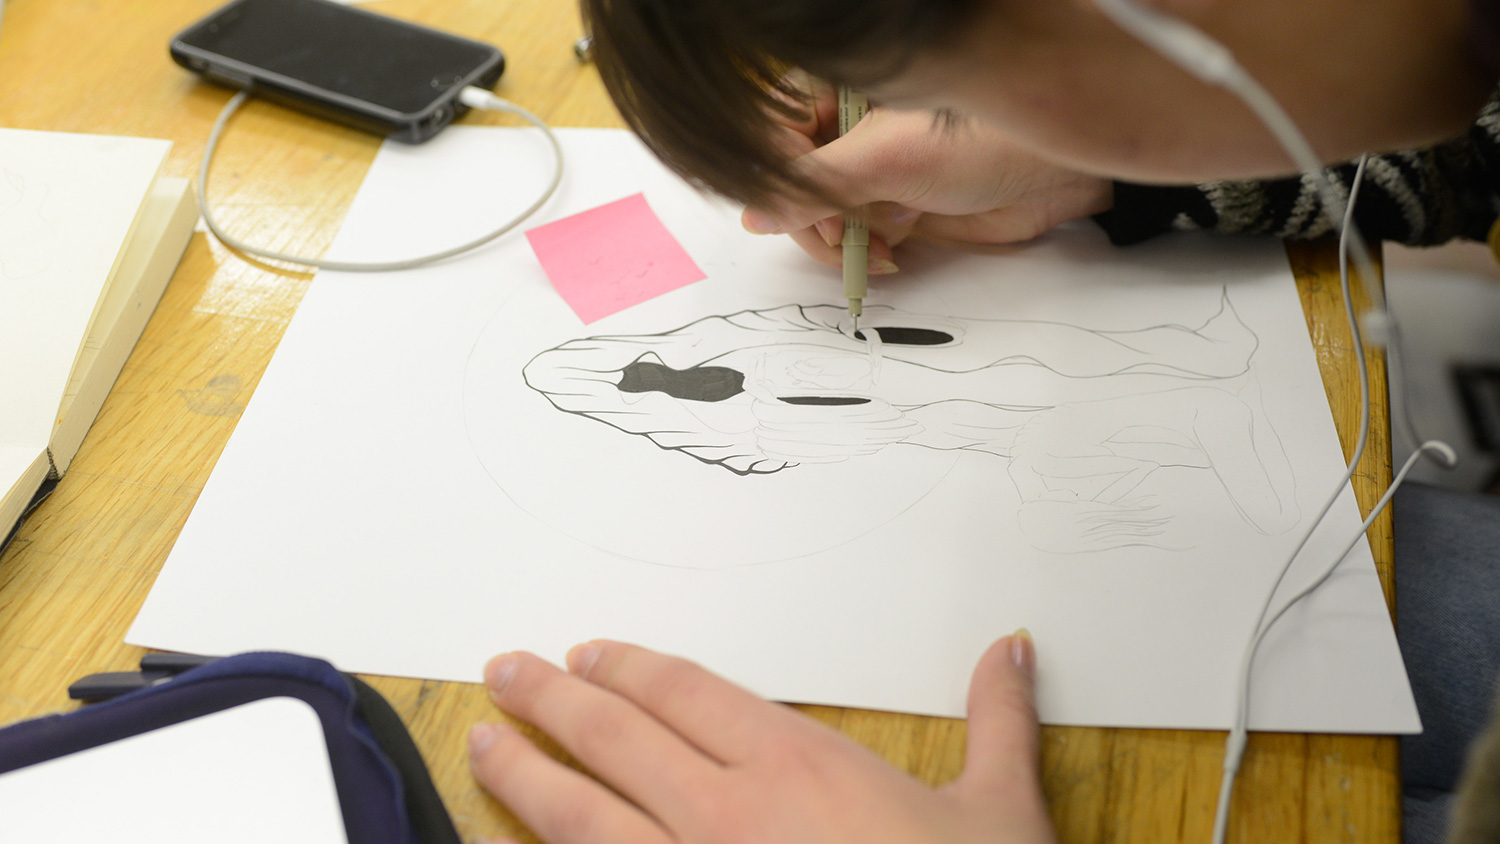 Student working on a drawing